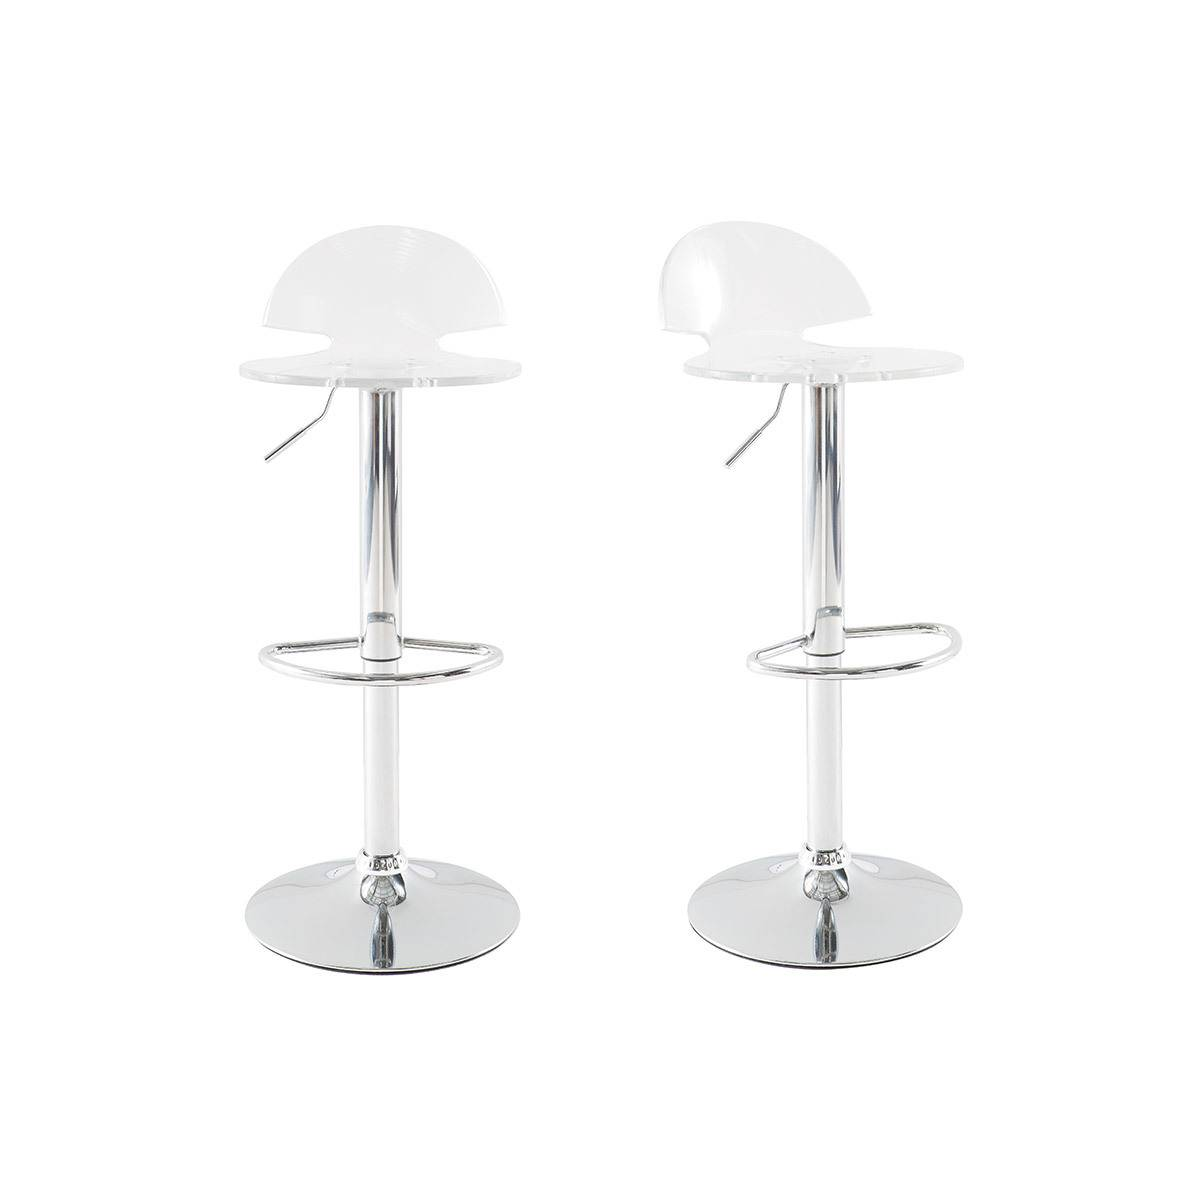 Miliboo Tabourets de bar design plexiglas transparent (lot de 2) ORION